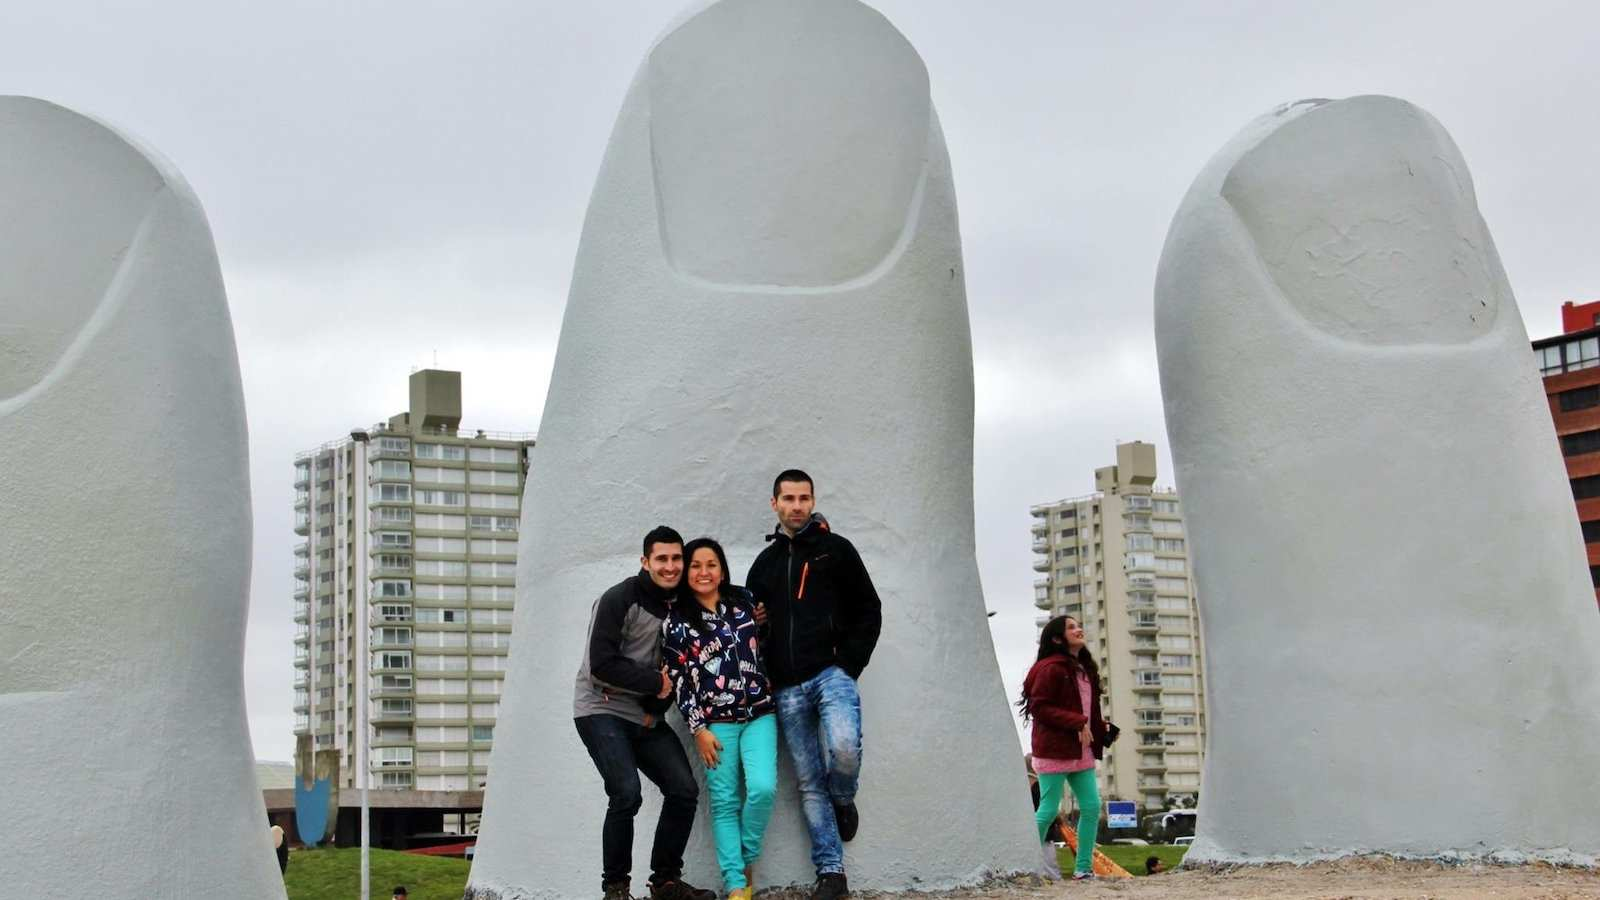 The giant sculpture at Punta del Este is not the only interesting thing about Uruguay - read more facts in the full post!